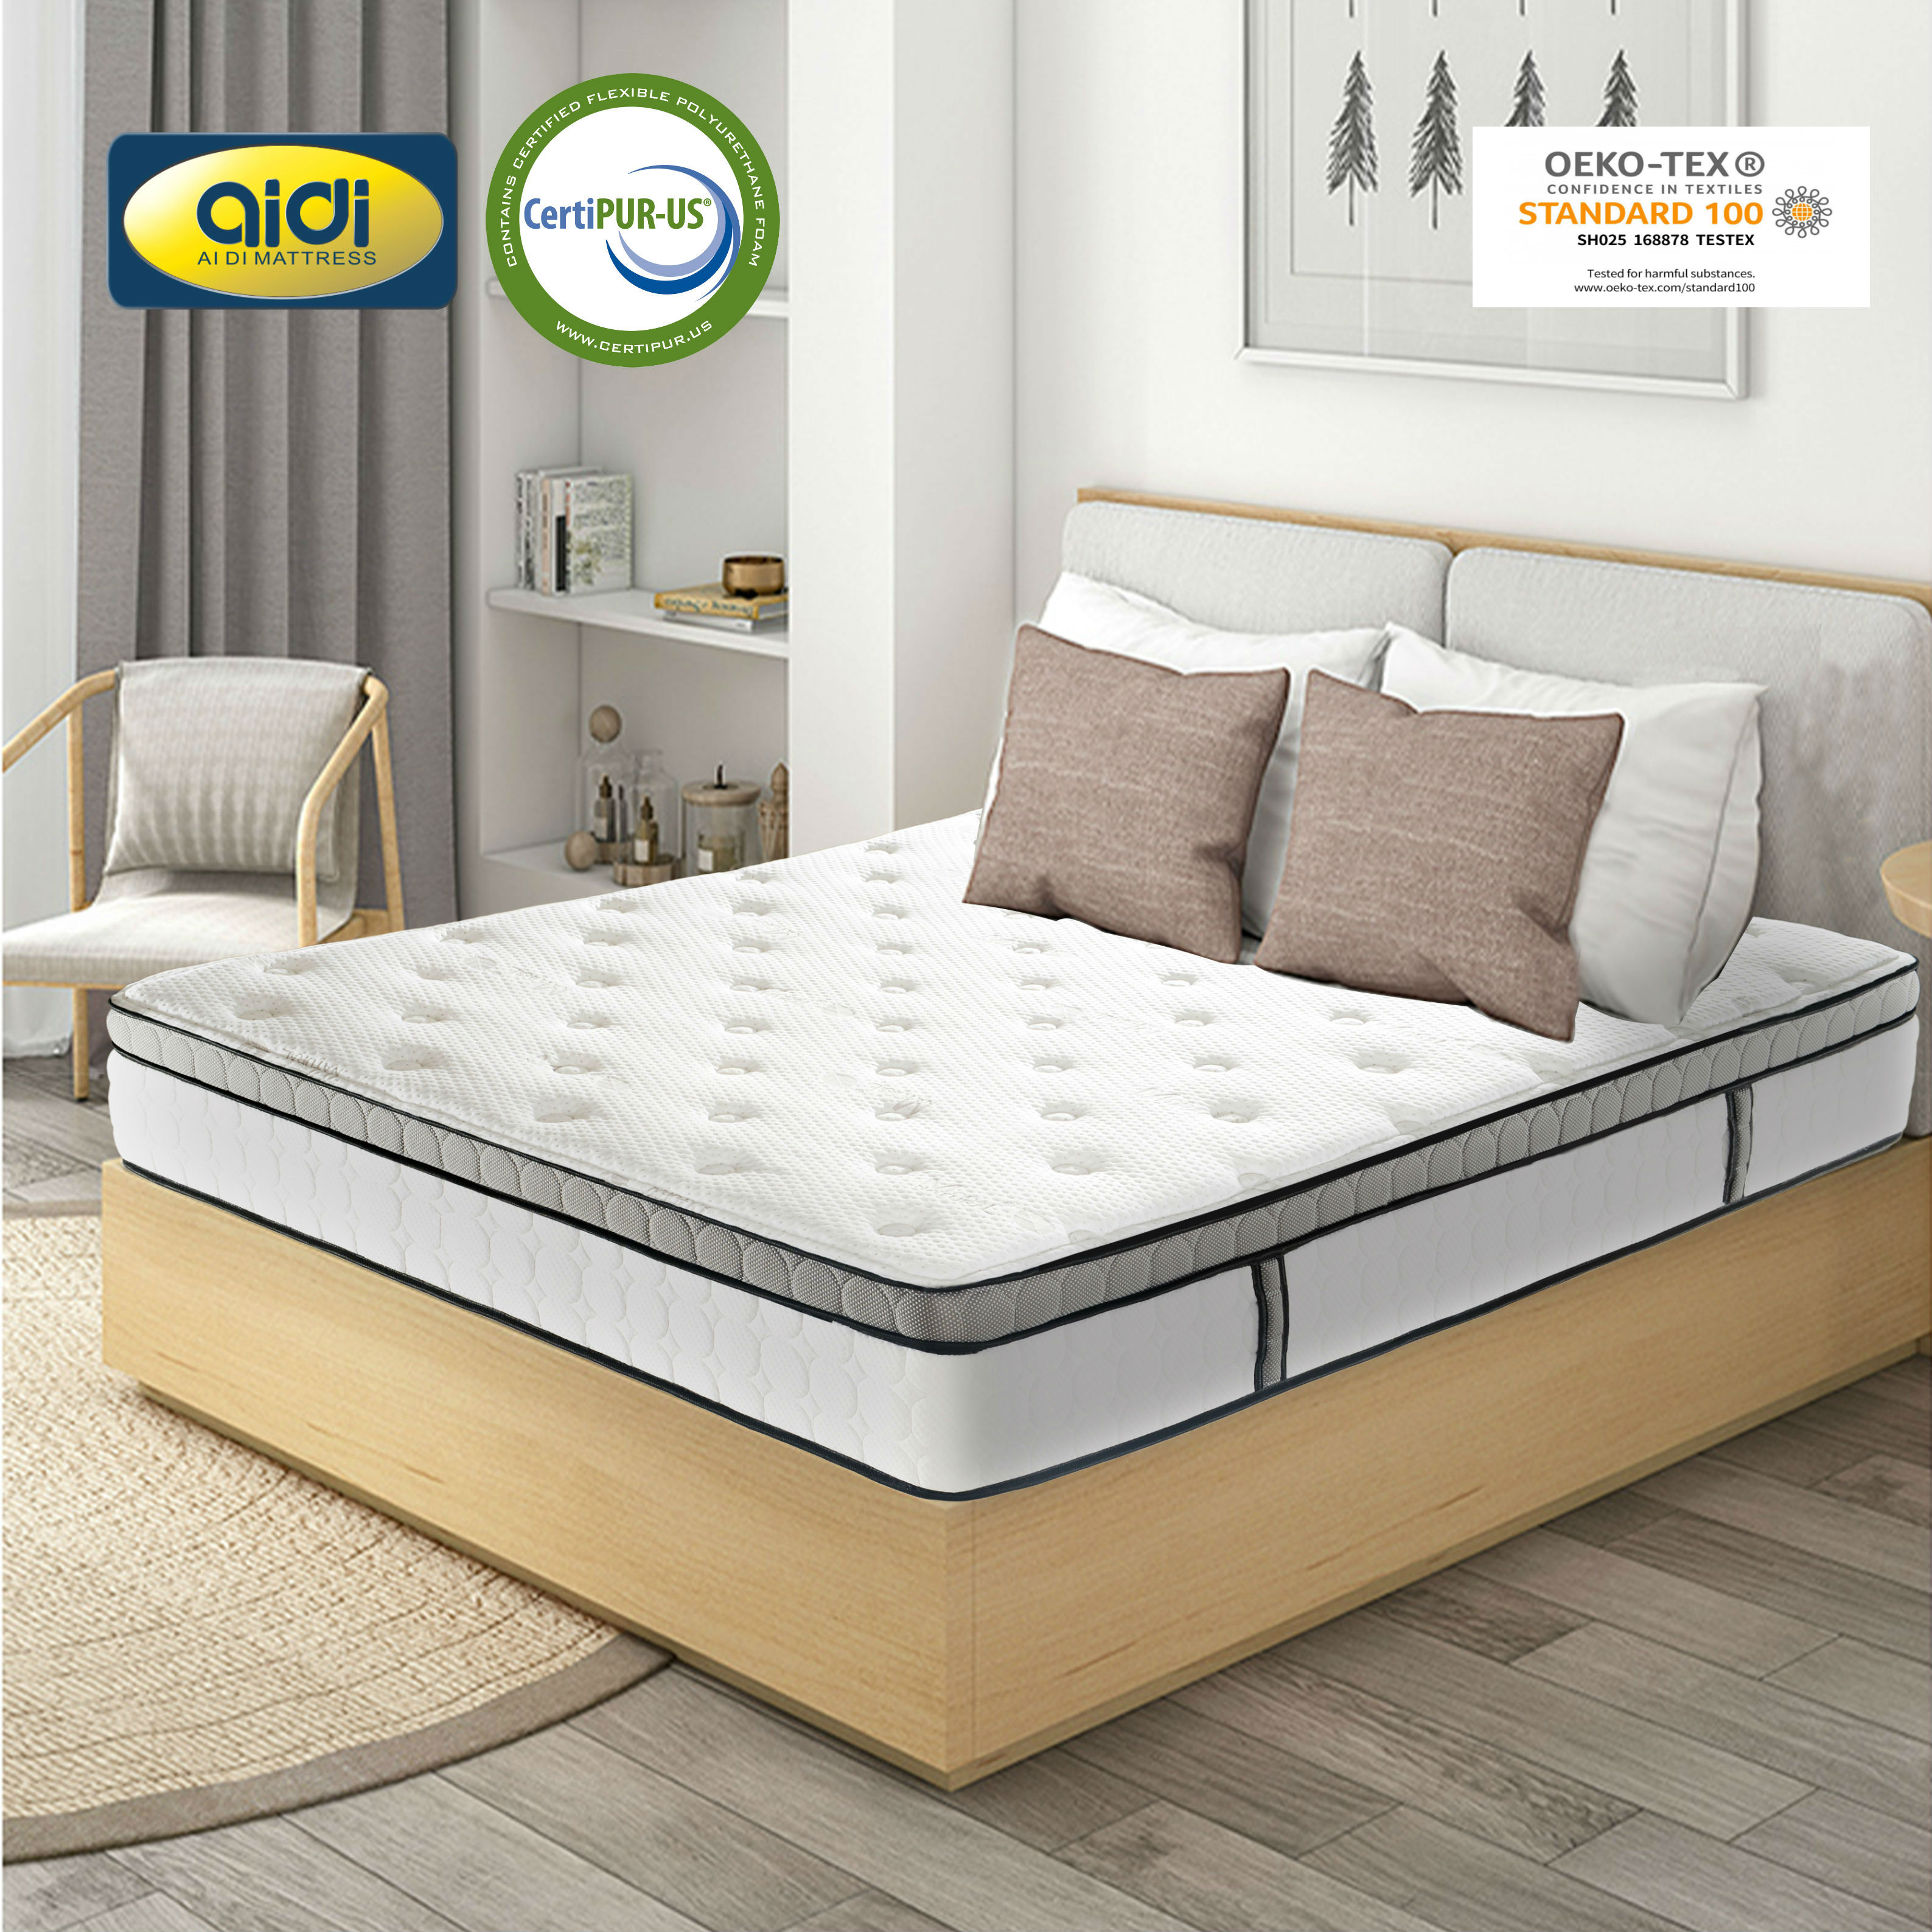 Picture of: Ai Di Euro Top Natural Latex Sleepwell Bed Mattress Sale Pocket Spring Memory Foam Mattress Price For Sale Online Buy Memory Foam Mattress Pocket Spring Mattress Roll Package Mattress Product On Alibaba Com